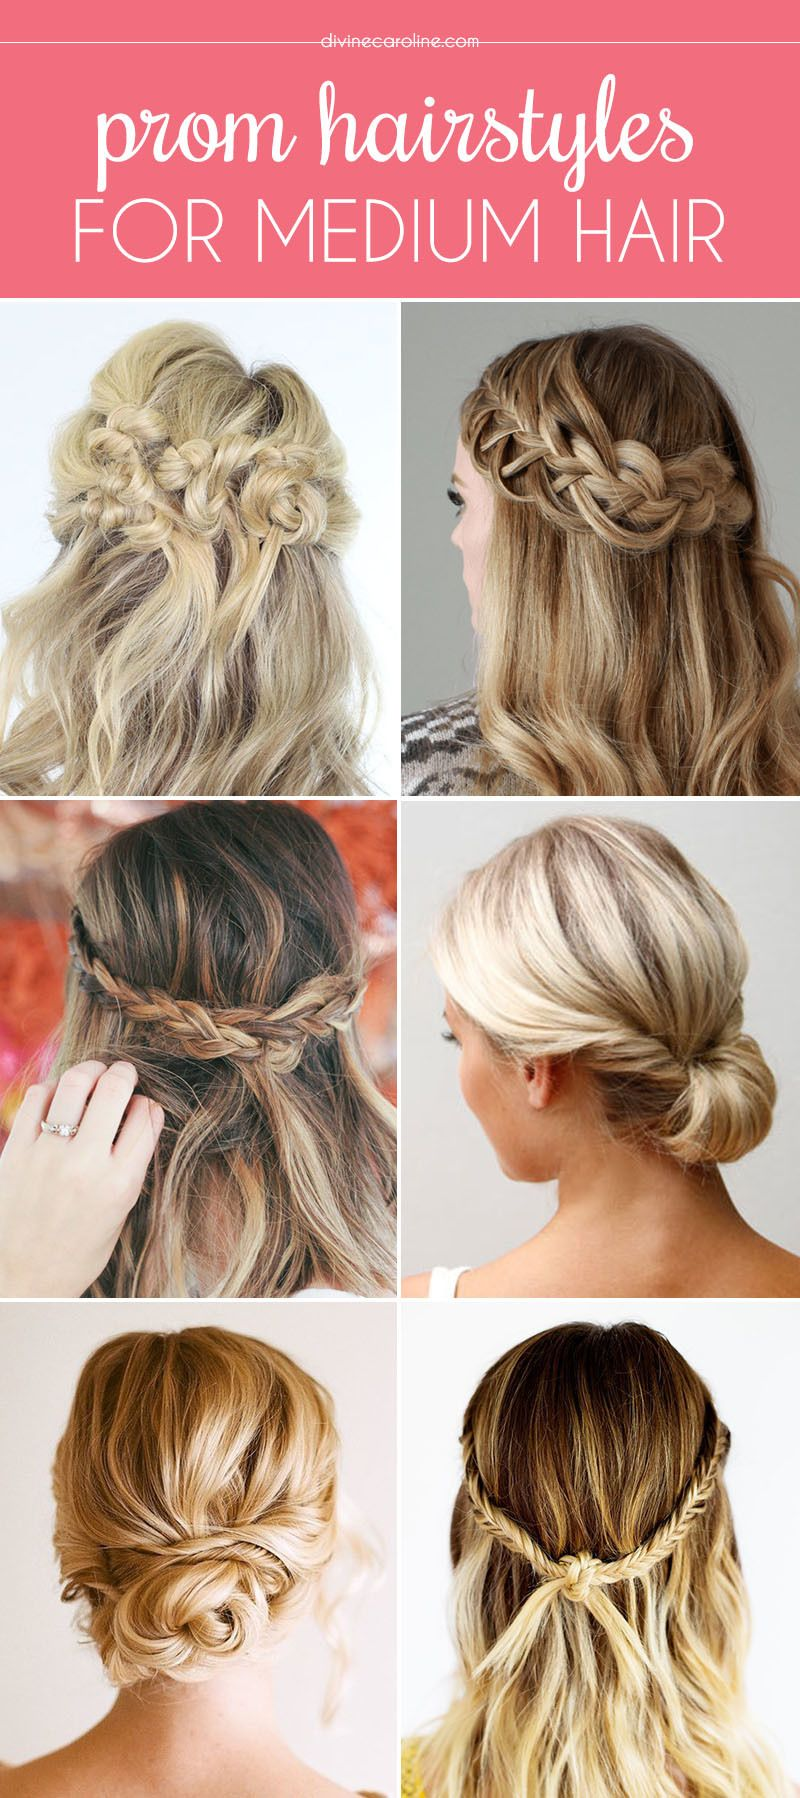 Our Favorite Prom Hairstyles for Medium-Length Hair ...